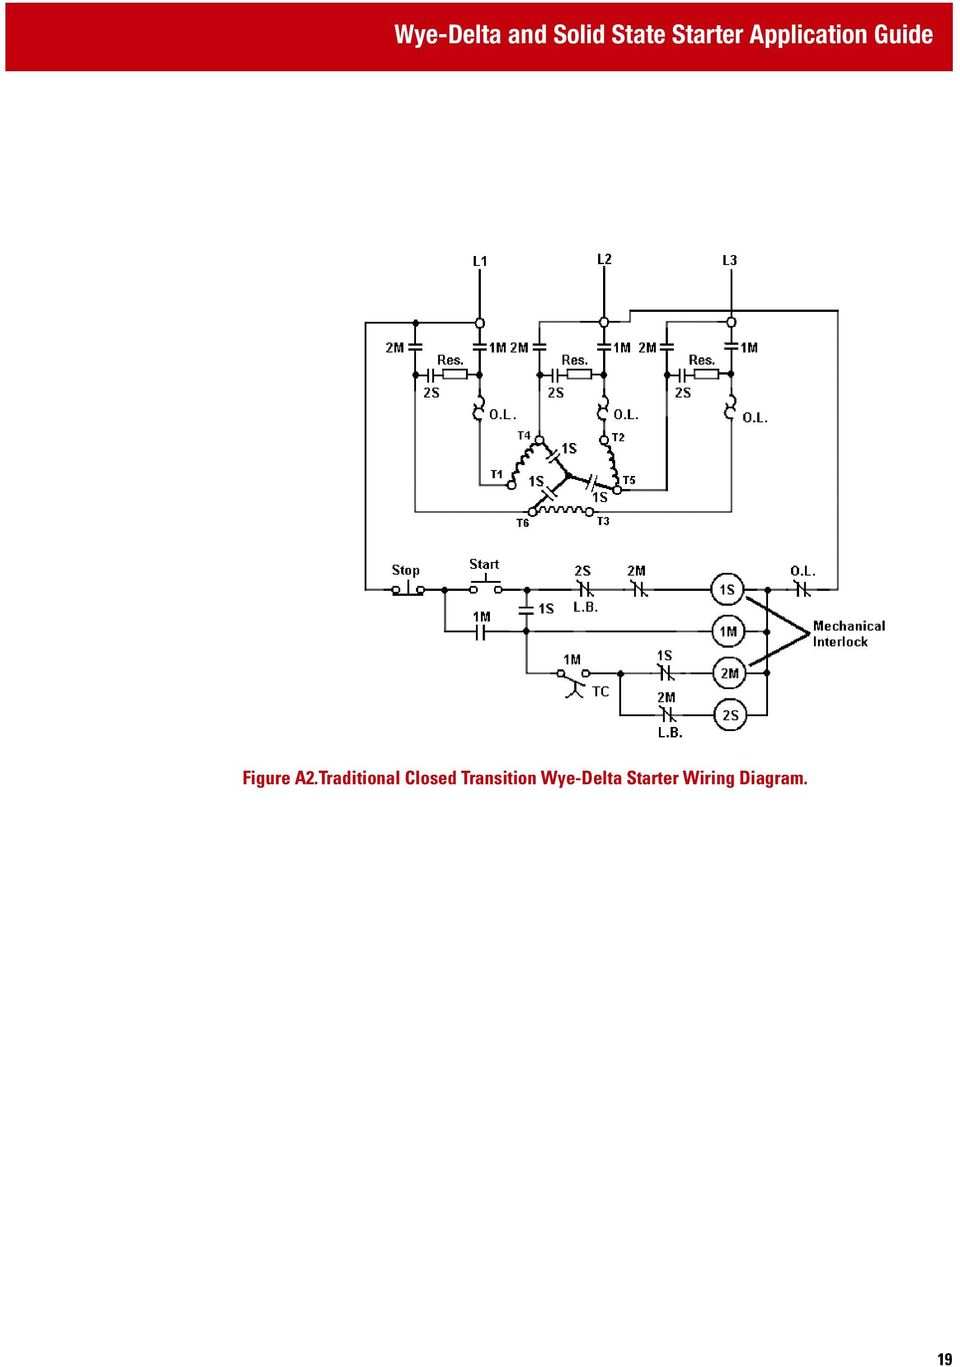 WYE-DELTA AND SOLID STATE STARTER APPLICATION GUIDE - PDF